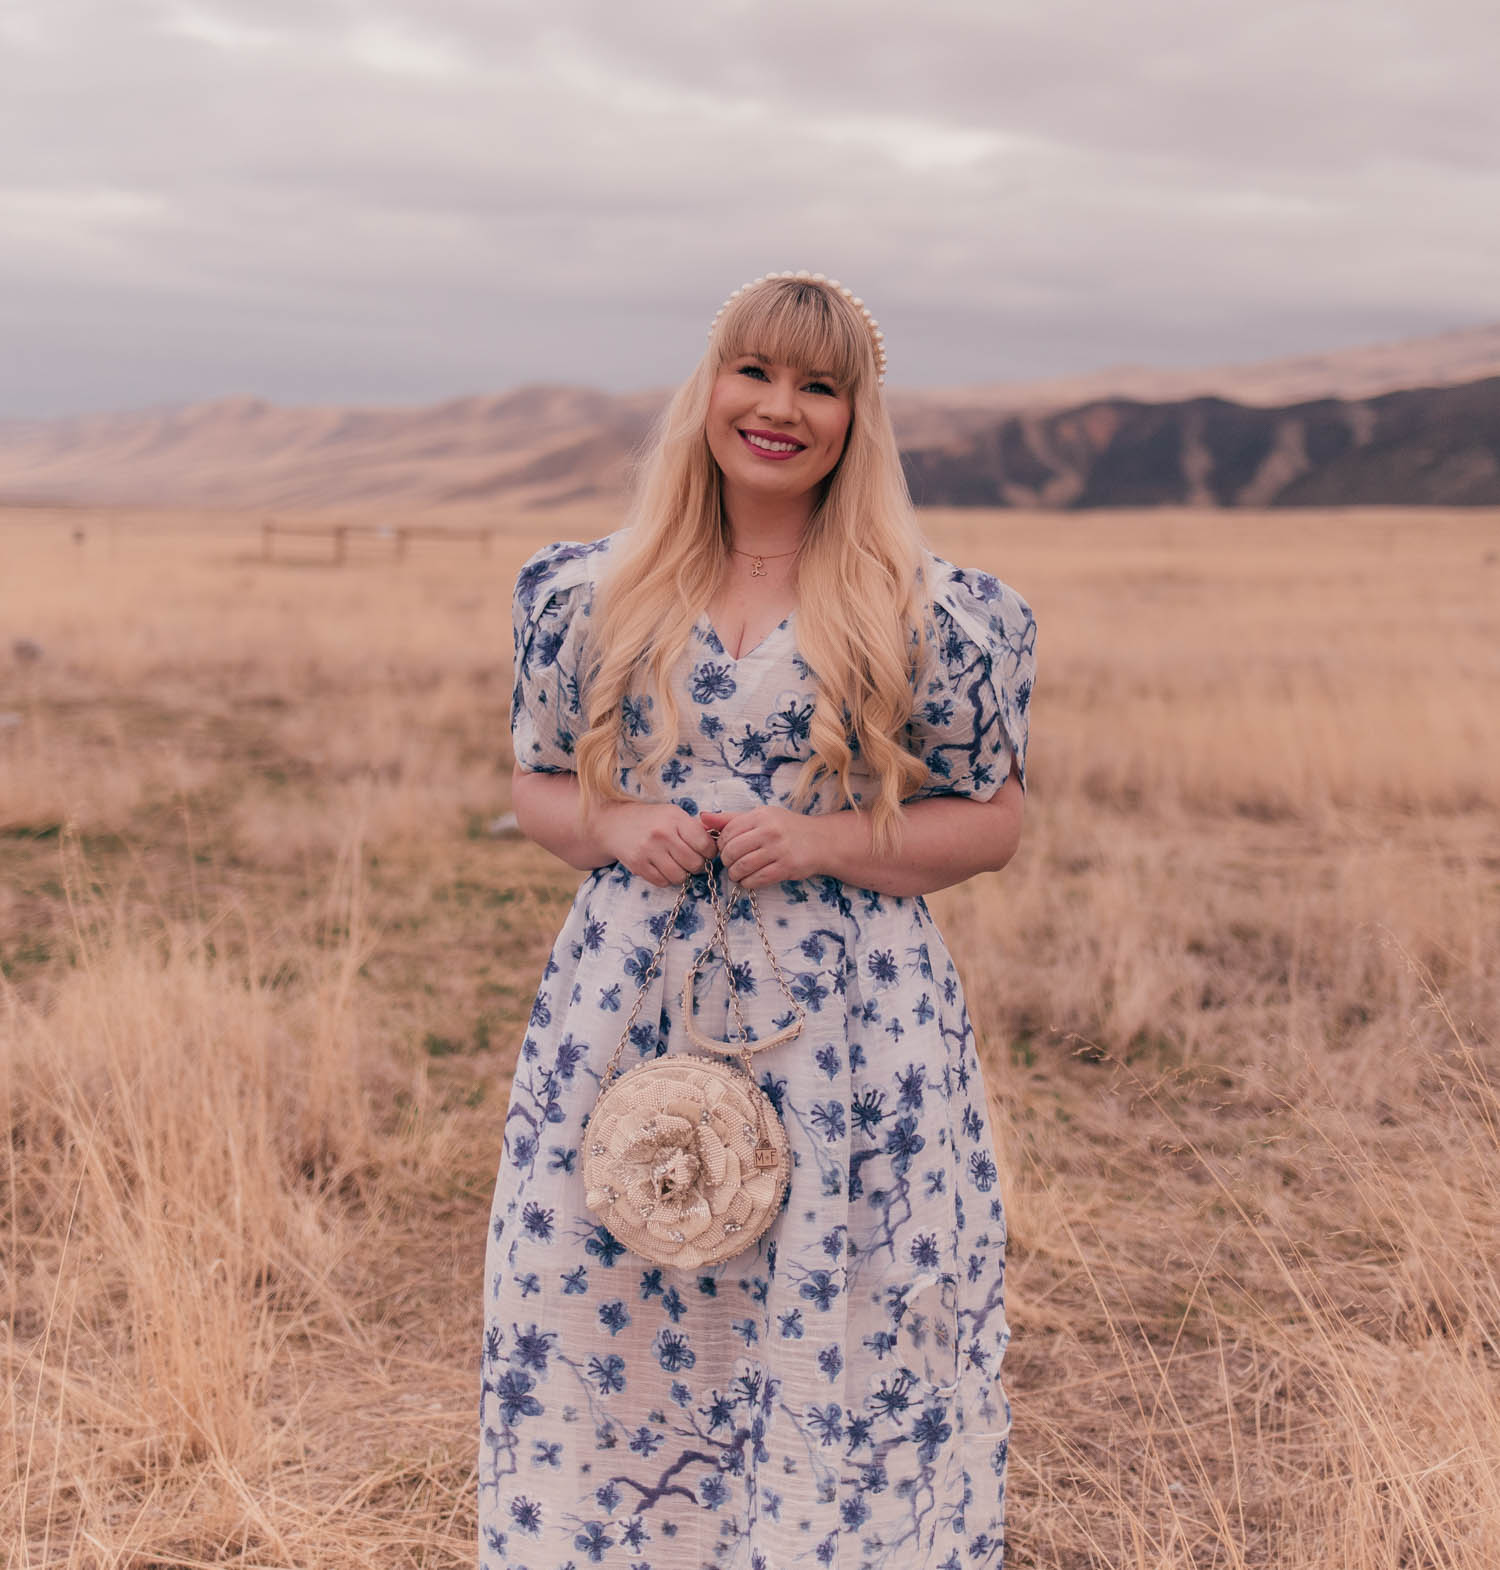 Feminine fashion blogger Elizabeth Hugen of Lizzie in Lace wears a beautiful white and blue floral dress with a Mary Frances handbag for spring and shares an interview with Syra J.